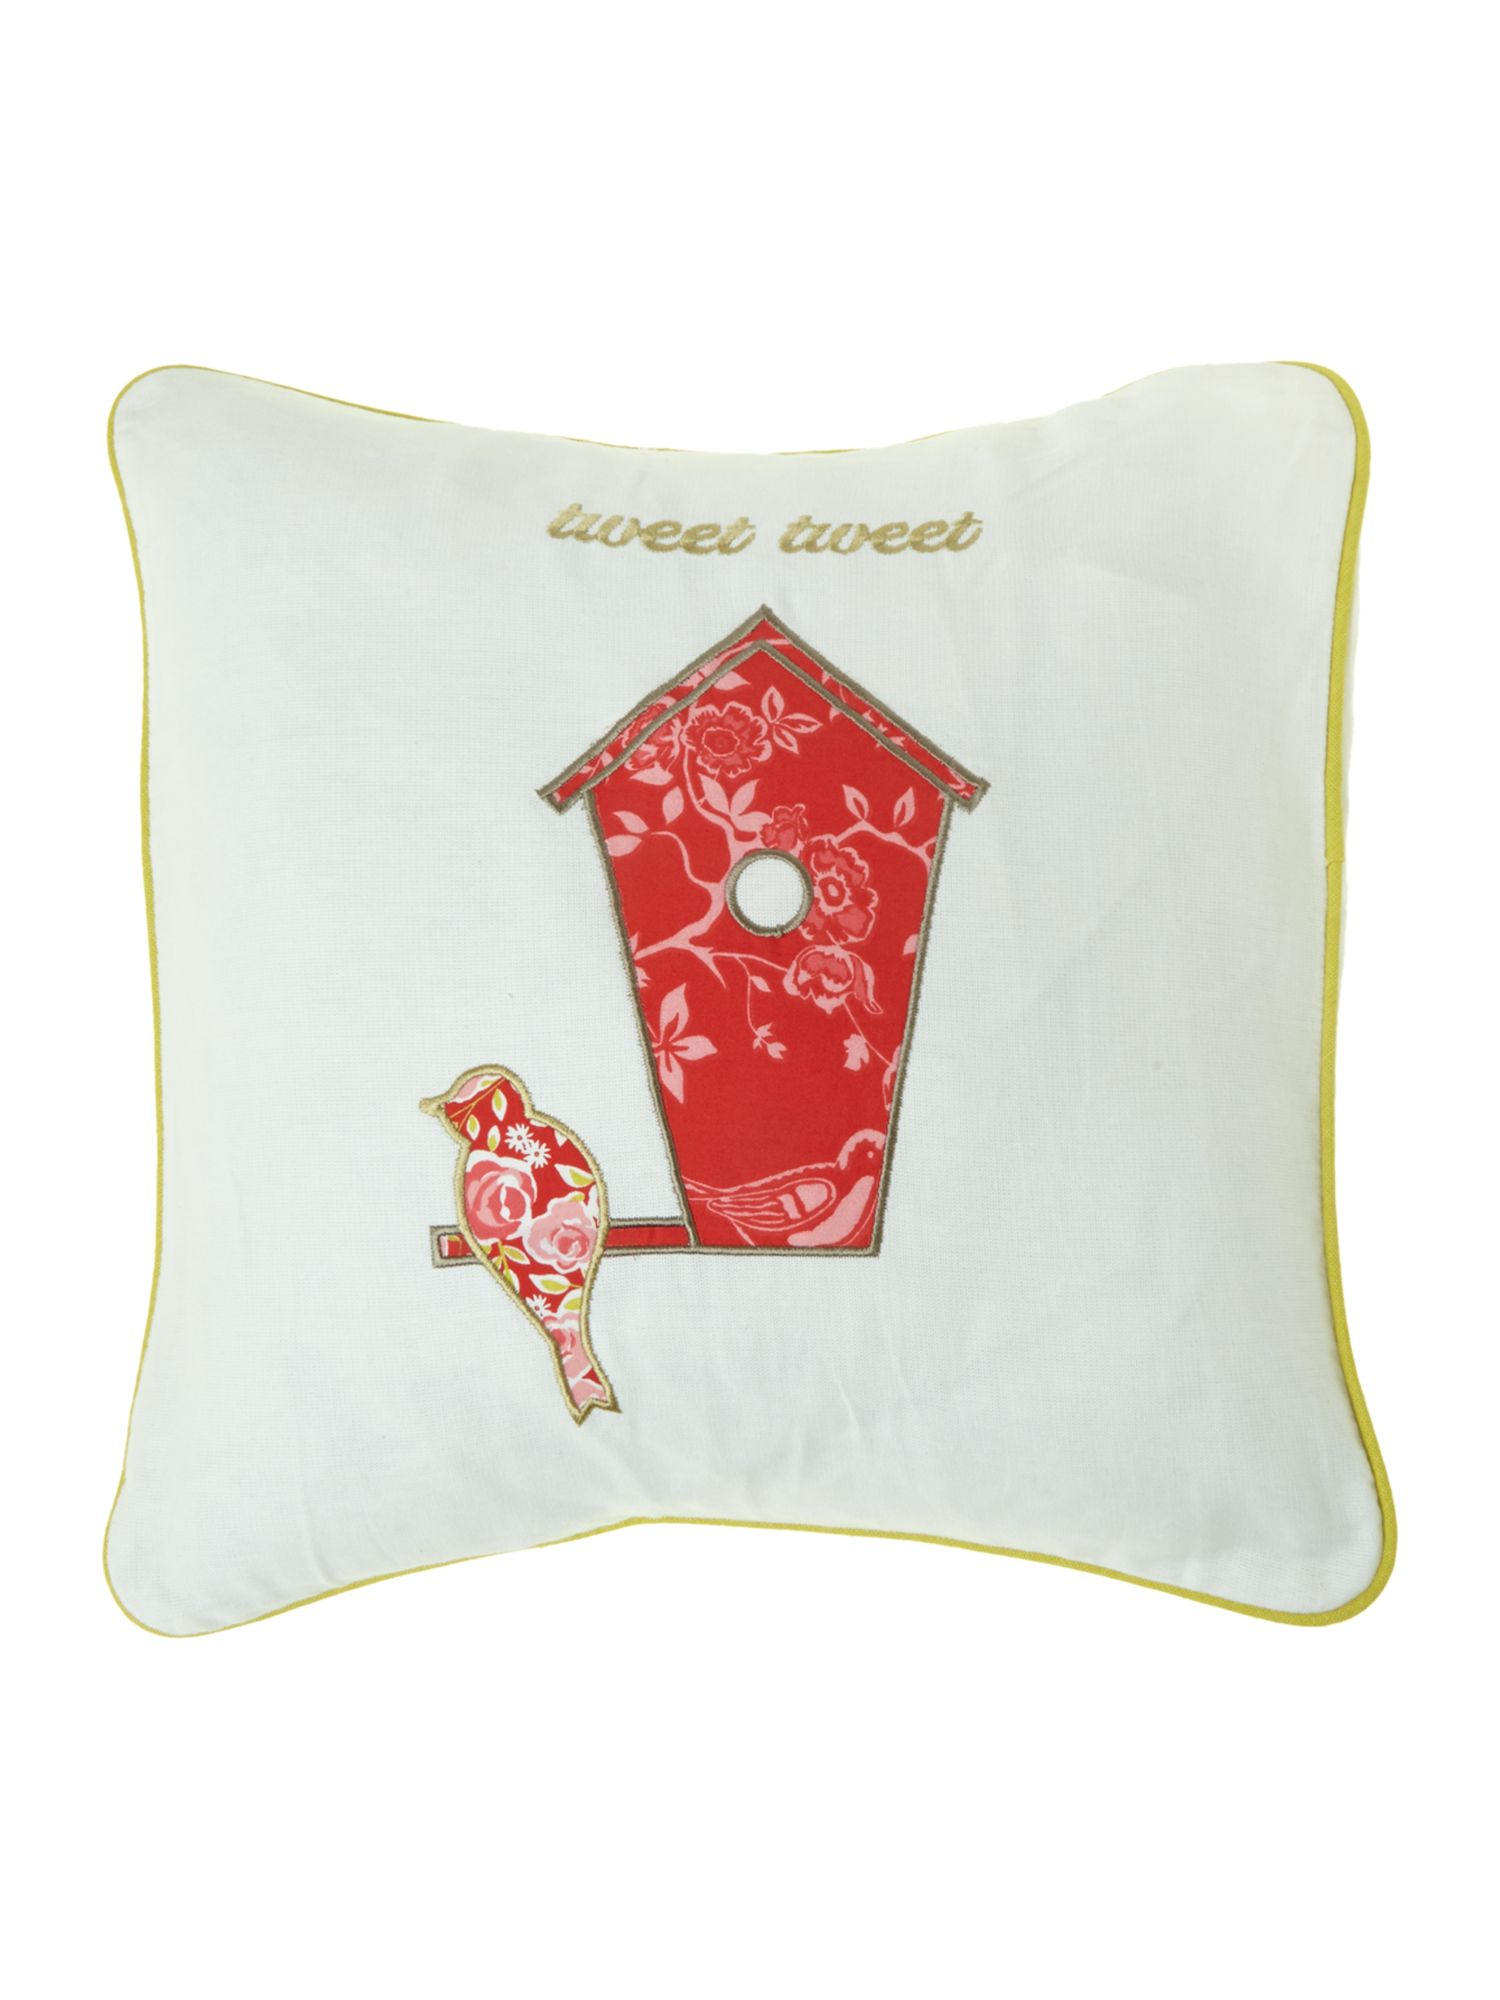 Tweet strawberry cushion